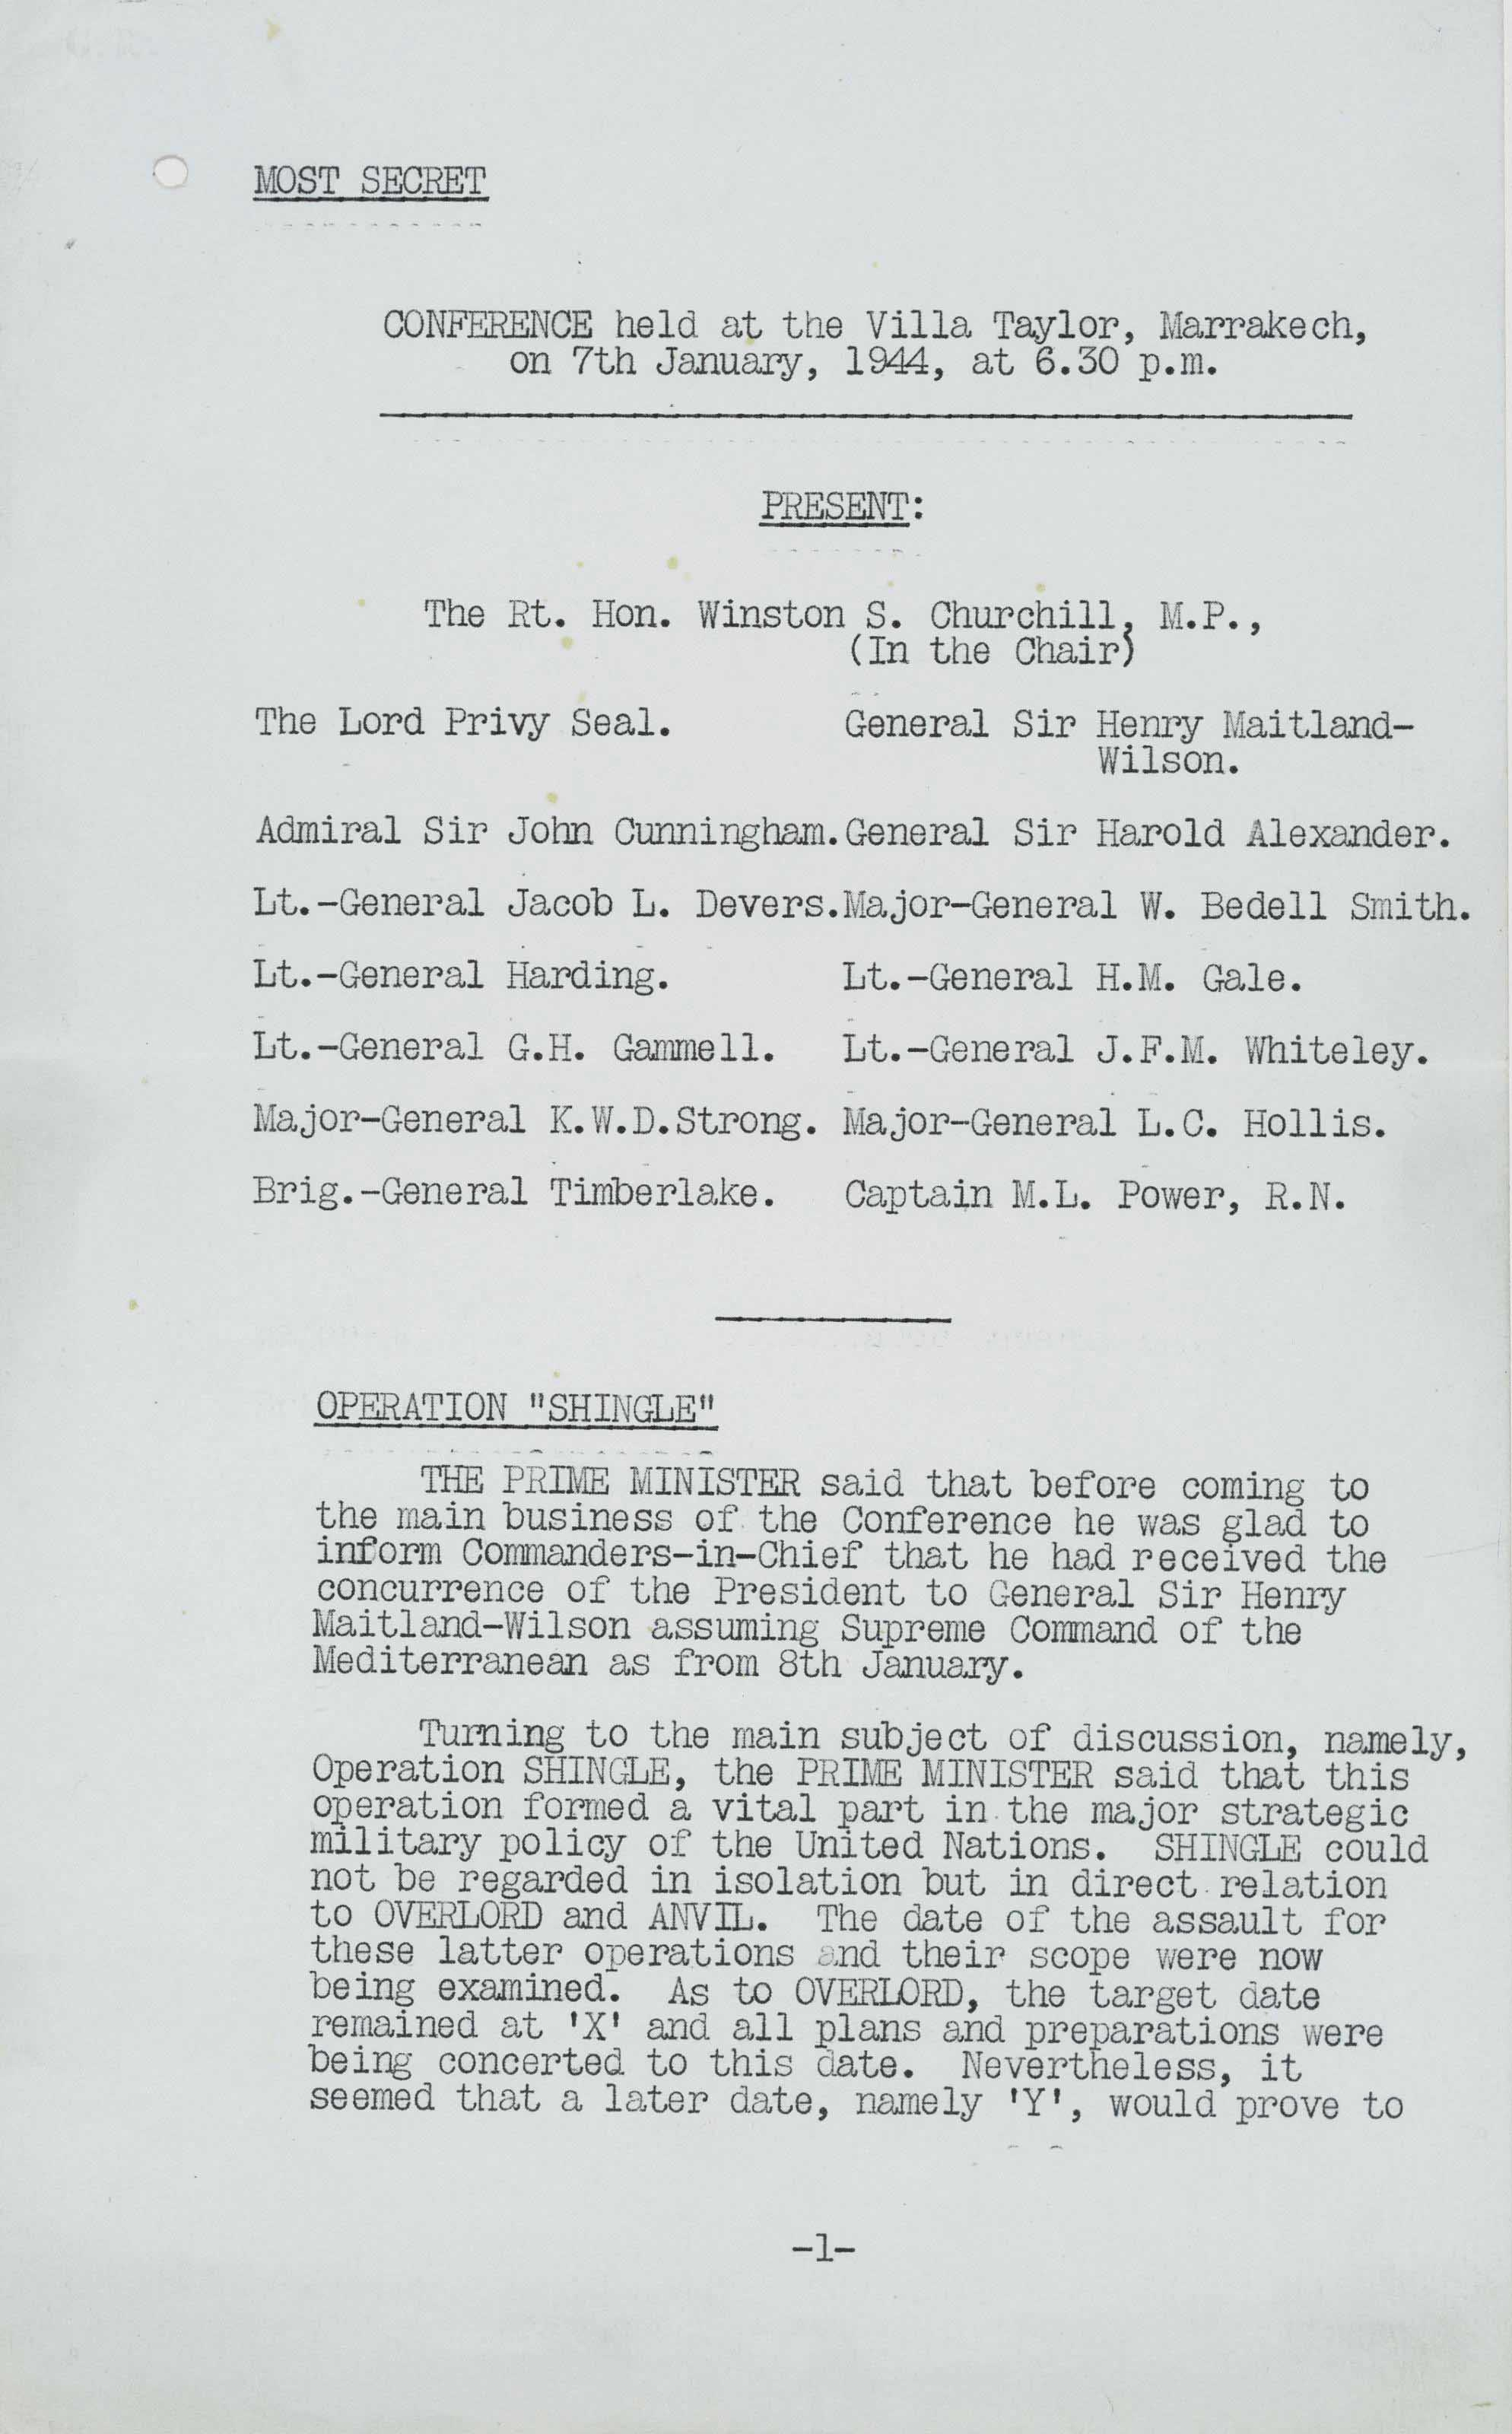 [CHURCHILL, Winston S.] Typed document, unsigned, Minutes of Marrakech Conference, 7-8 January 1944.~17 pages, folio and 4to. [With:] 10 January 1944 typed memorandum signed from L. C. Hollis to the Lord Privy Seal (Robert Gascoyne-Cecil).